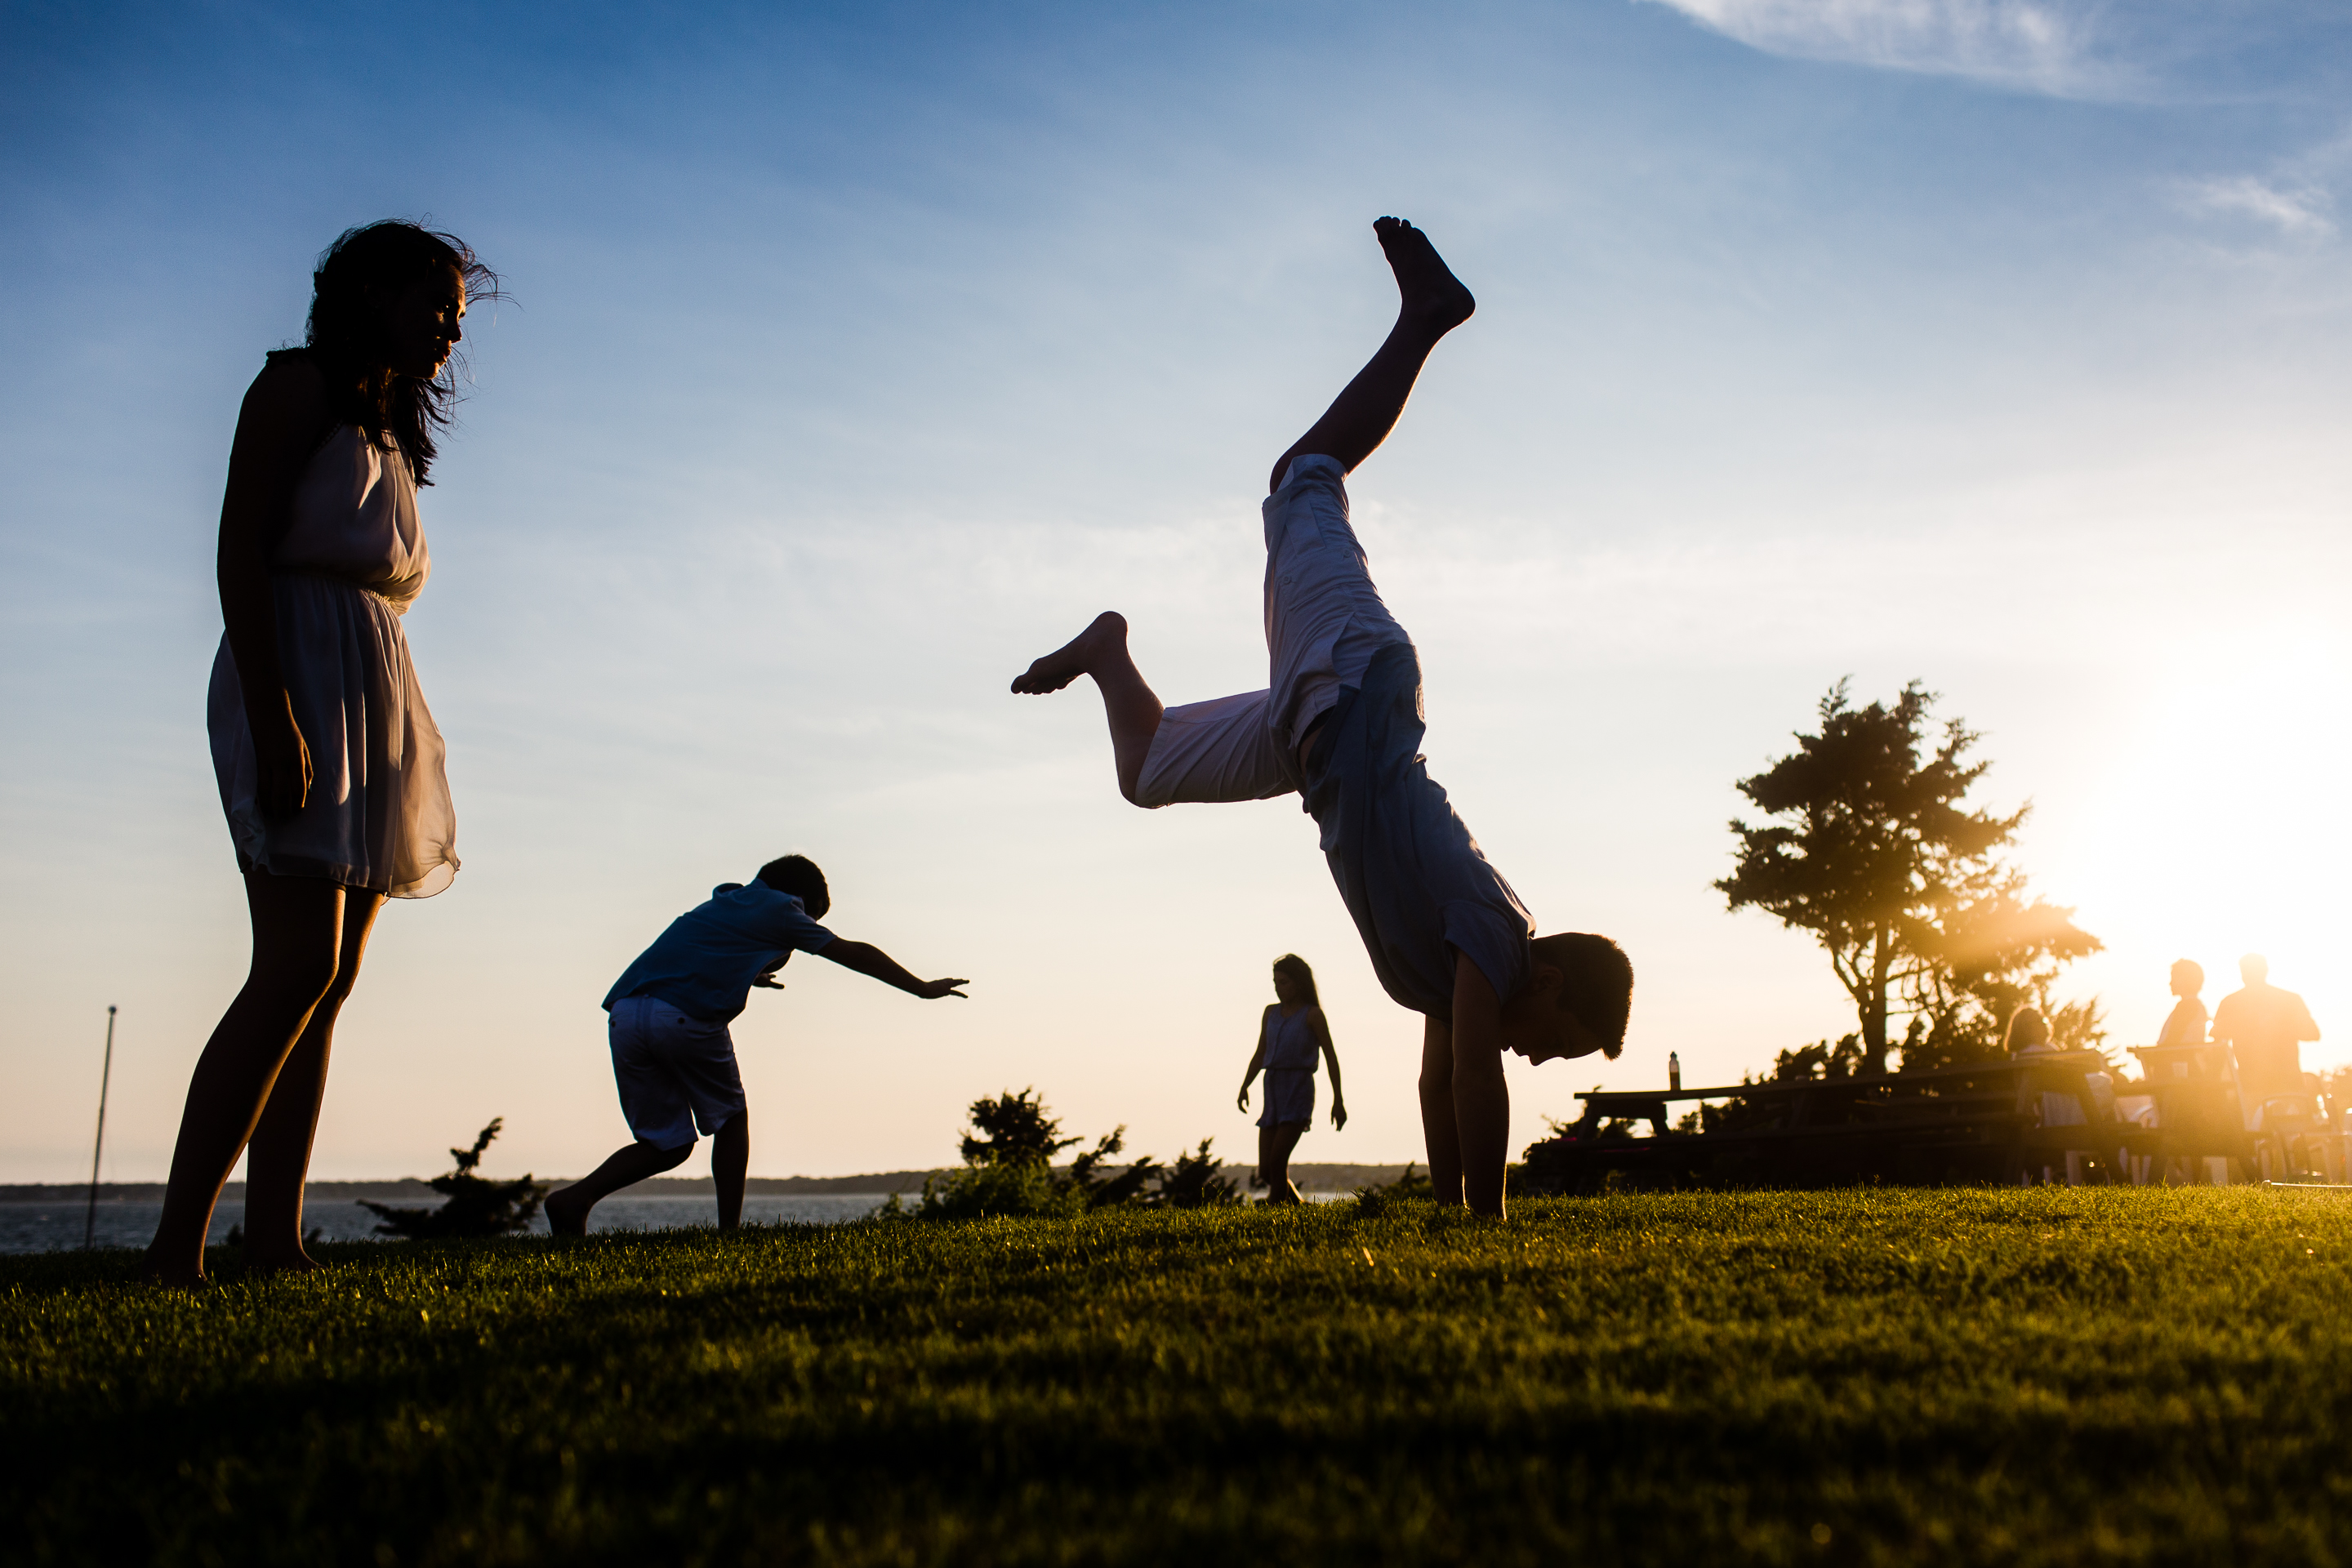 silhouette of kids doing cartwheels on grass